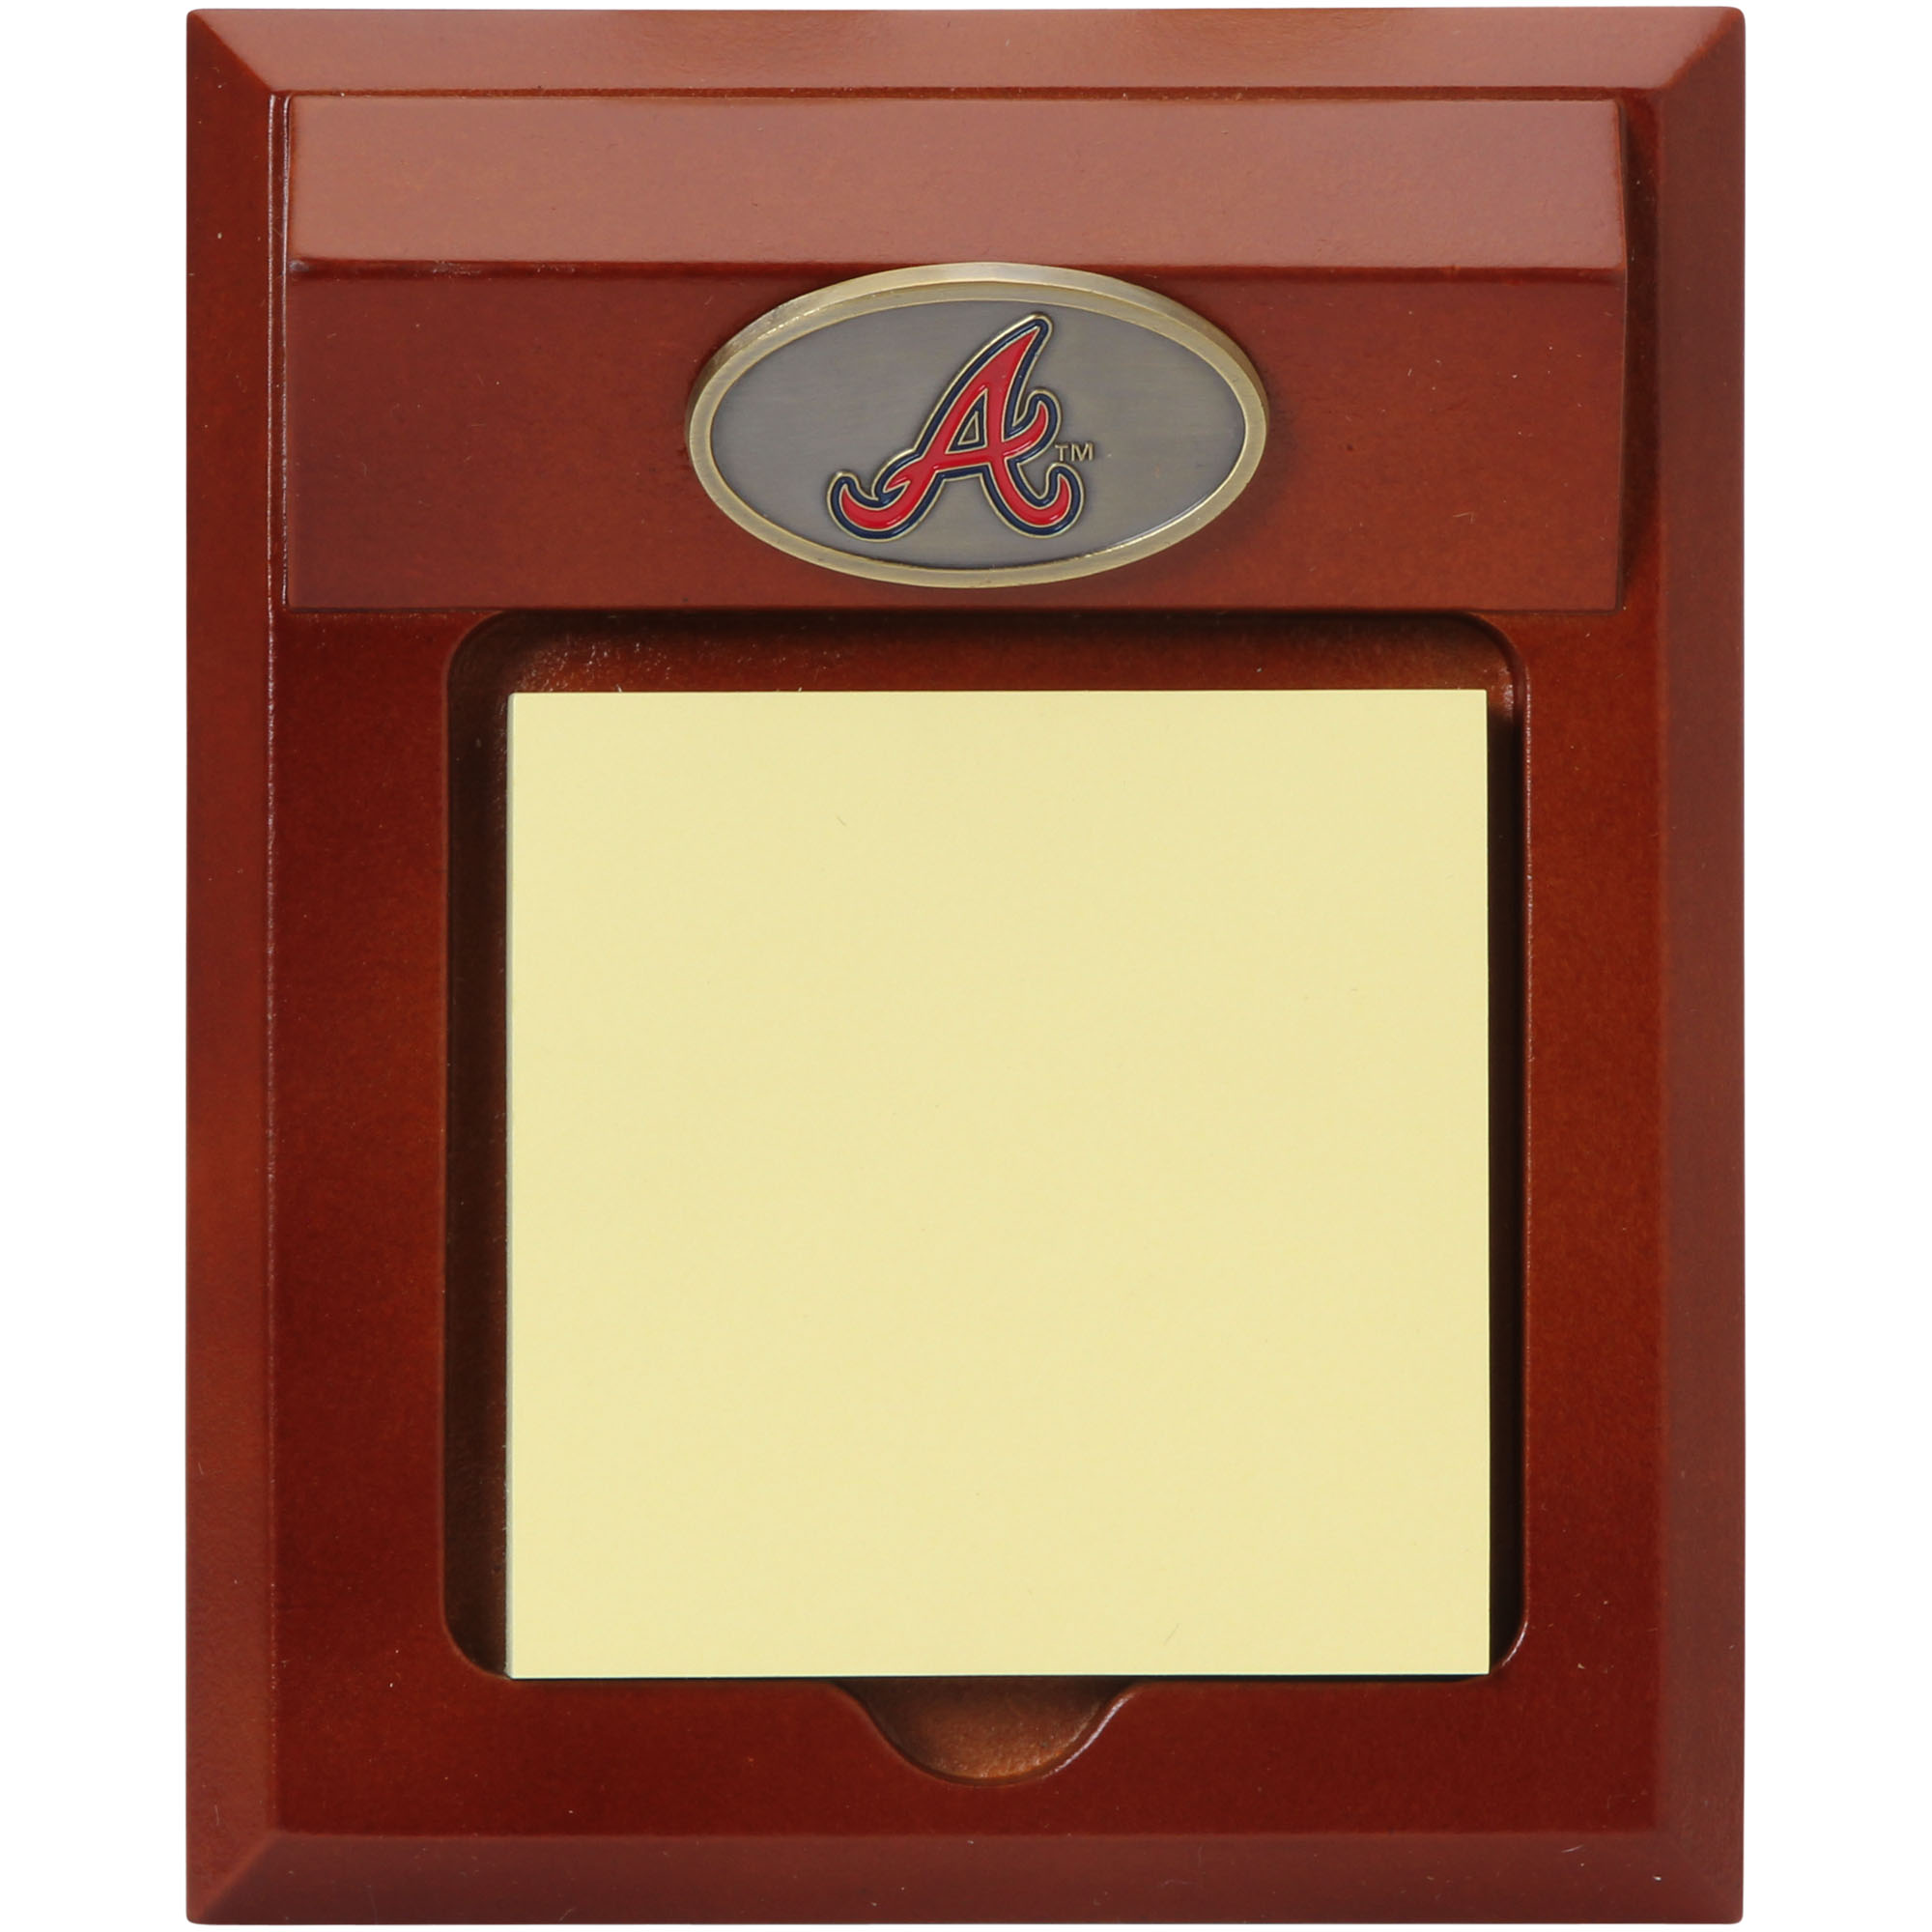 Atlanta Braves Memo Pad Holder No Size by THE MEMORY COMPANY LLC